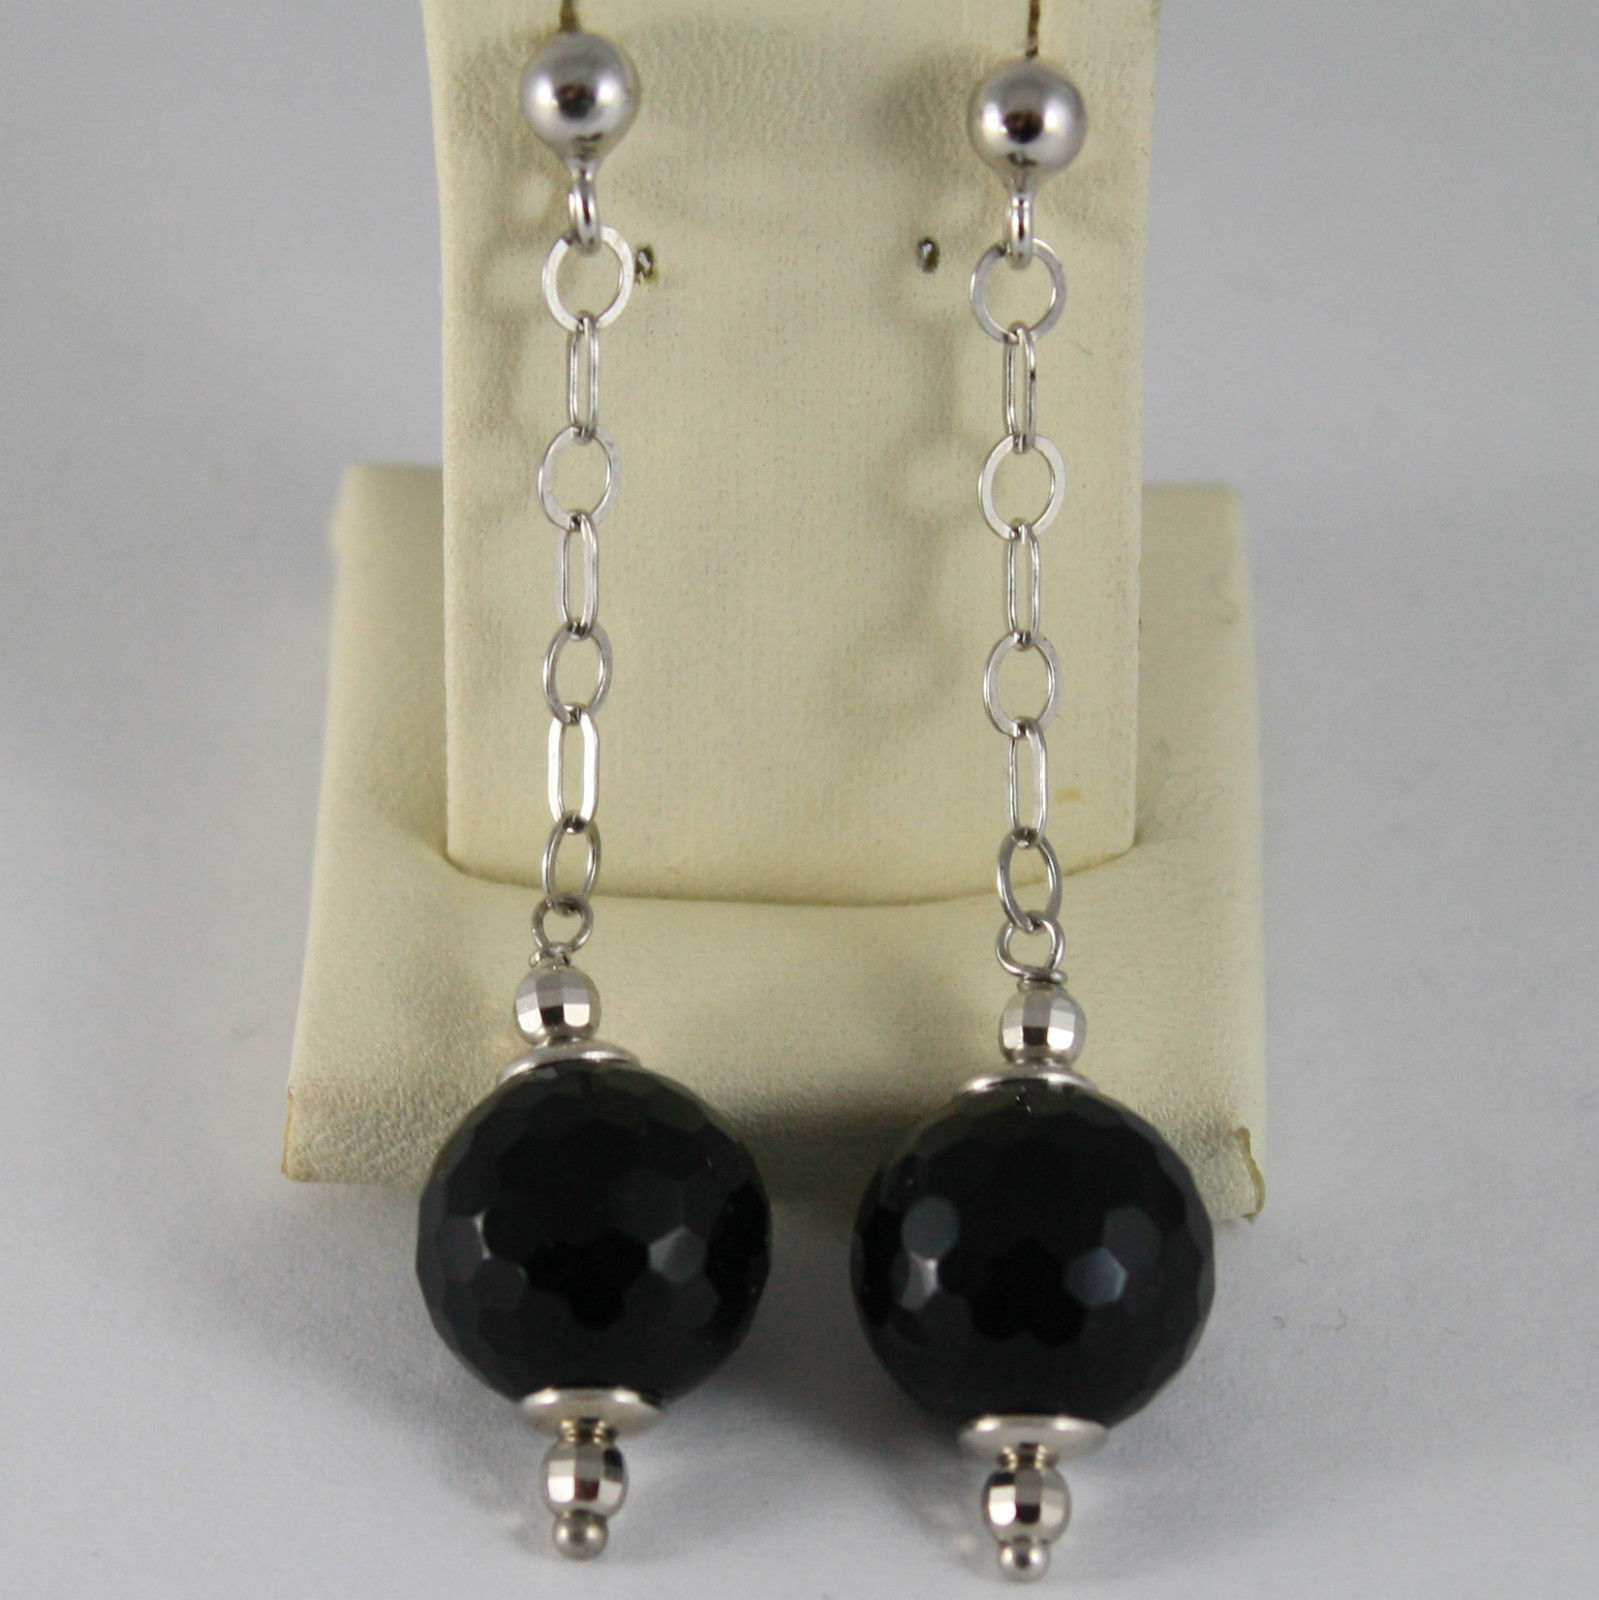 925 STERLING SILVER RHODIUM PENDANT EARRINGS WITH BLACK AND FACETED ONYX